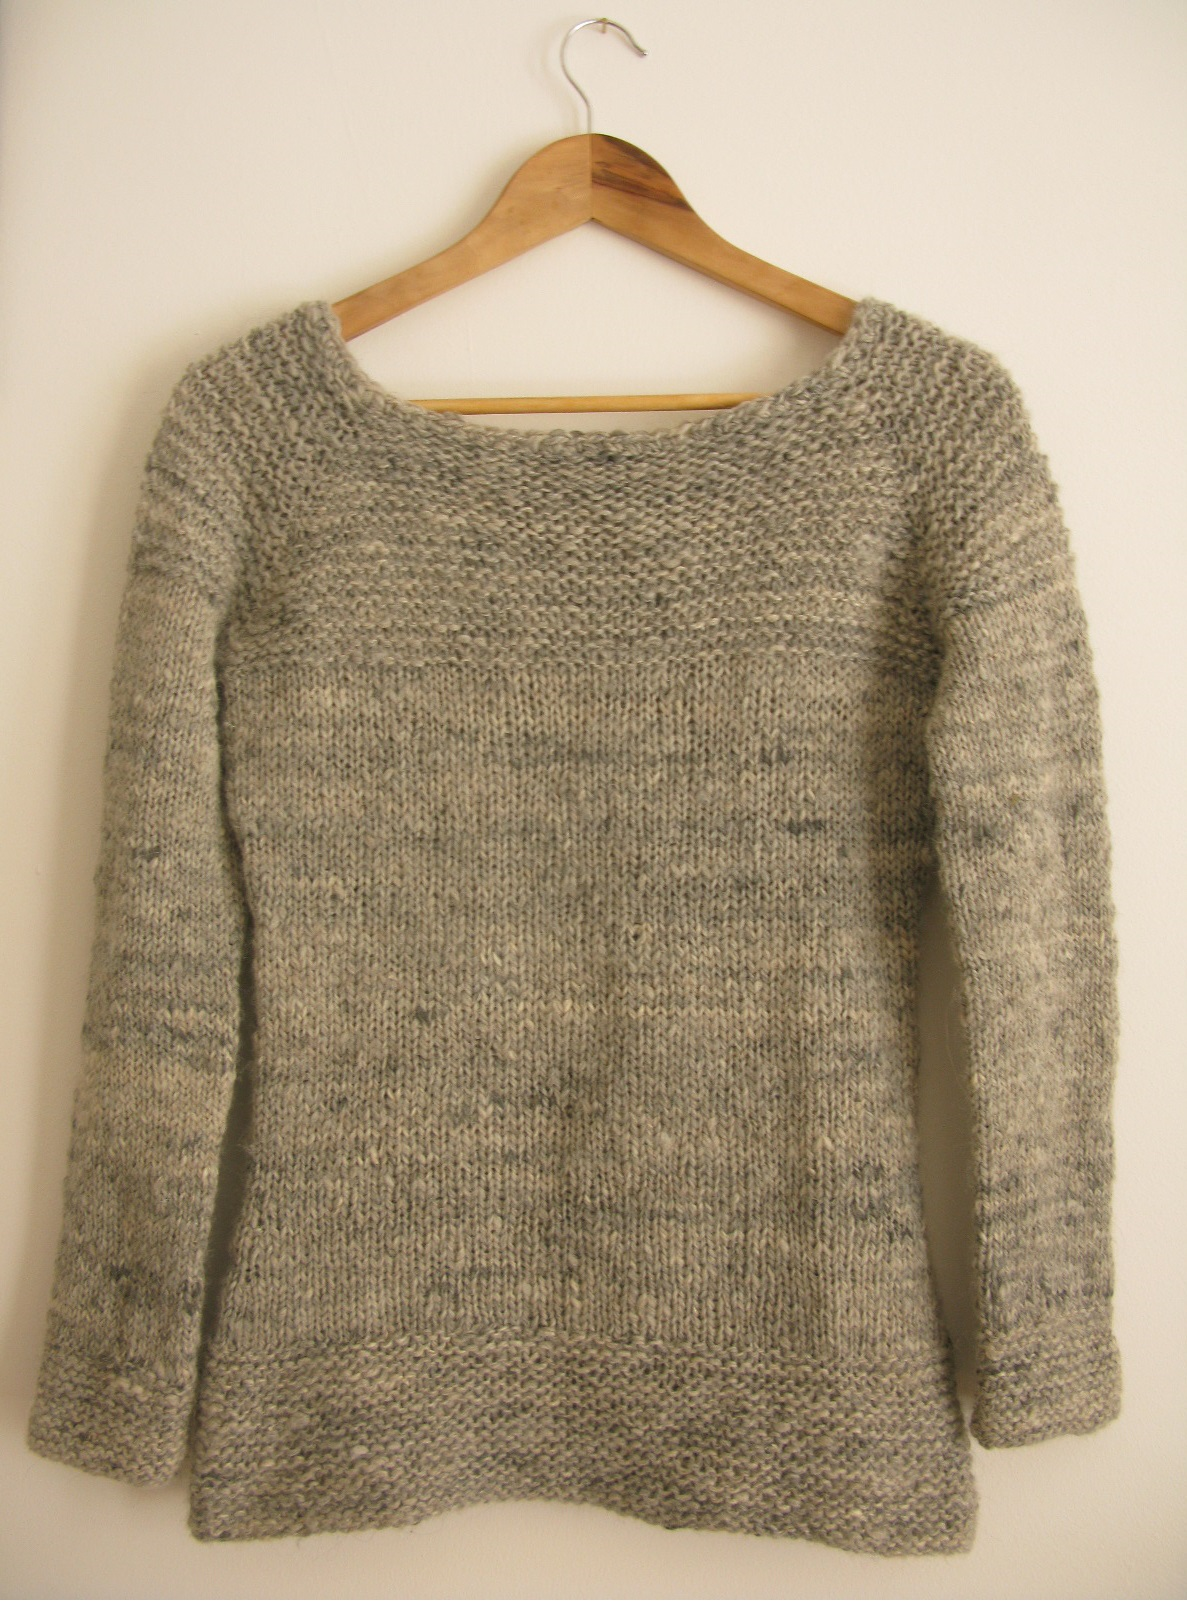 Sweater Knitting Design Pattern : Caora Sweater Pattern Caora Fibres